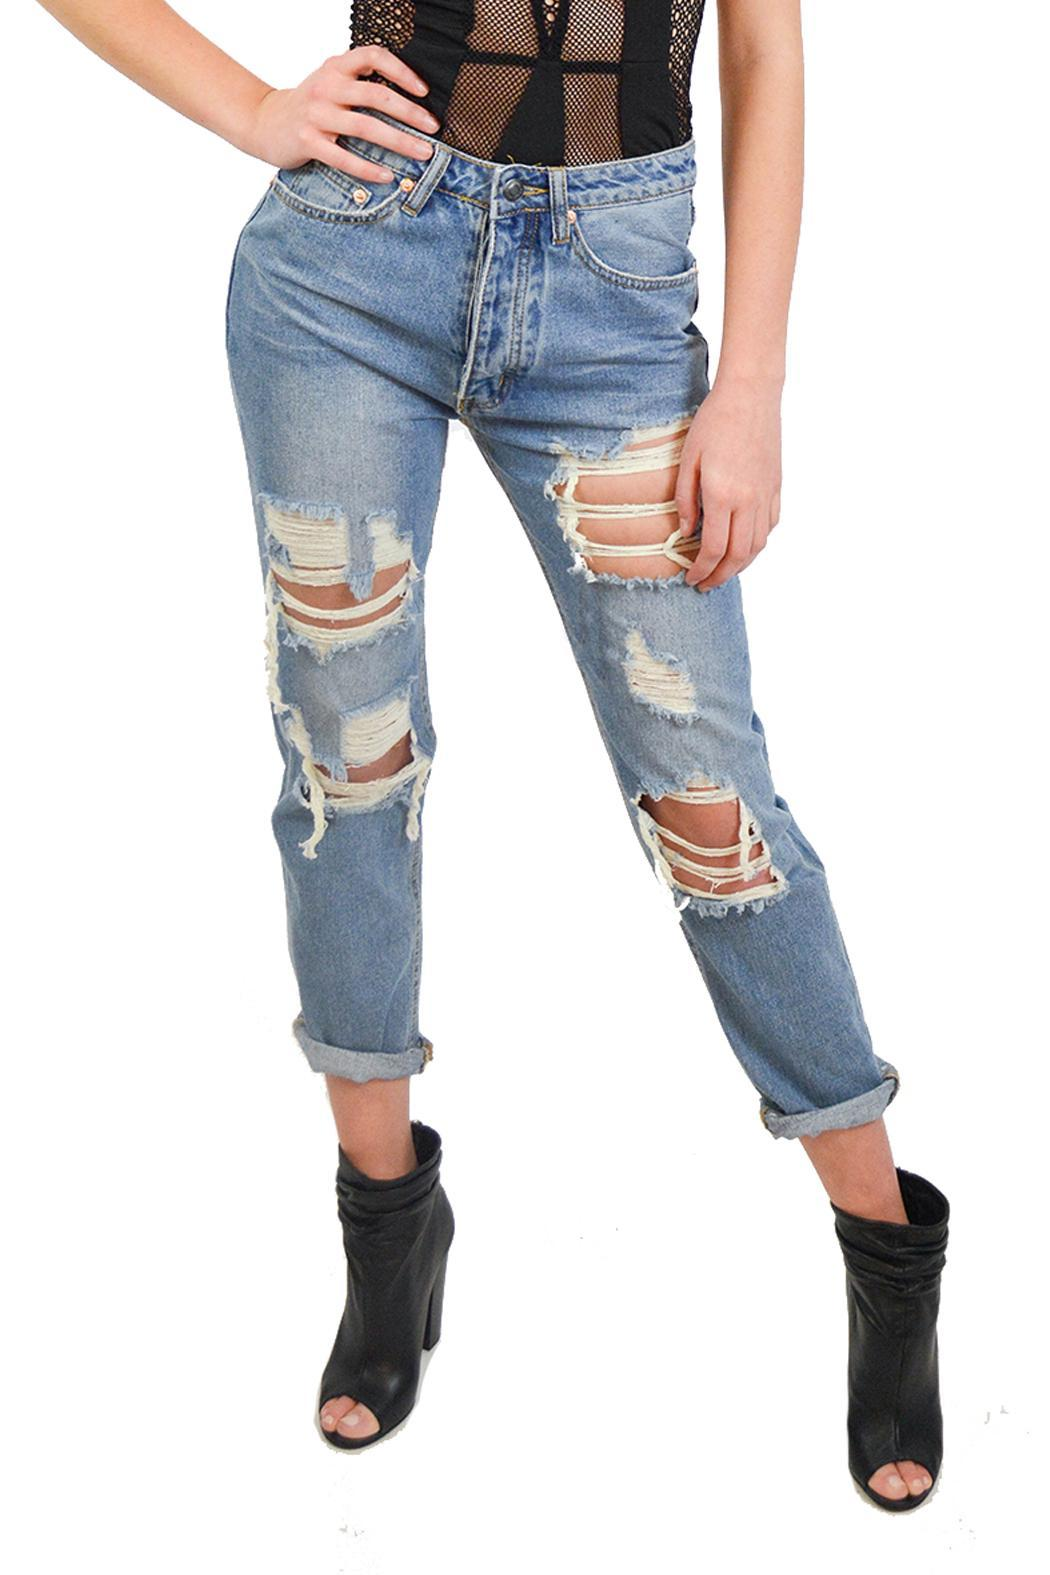 Watch Ripped Jeans porn videos for free, here on nazhatie-skachat.gq Discover the growing collection of high quality Most Relevant XXX movies and clips. No other sex tube is more popular and features more Ripped Jeans scenes than Pornhub! Browse through our impressive selection of porn videos in HD quality on any device you own.